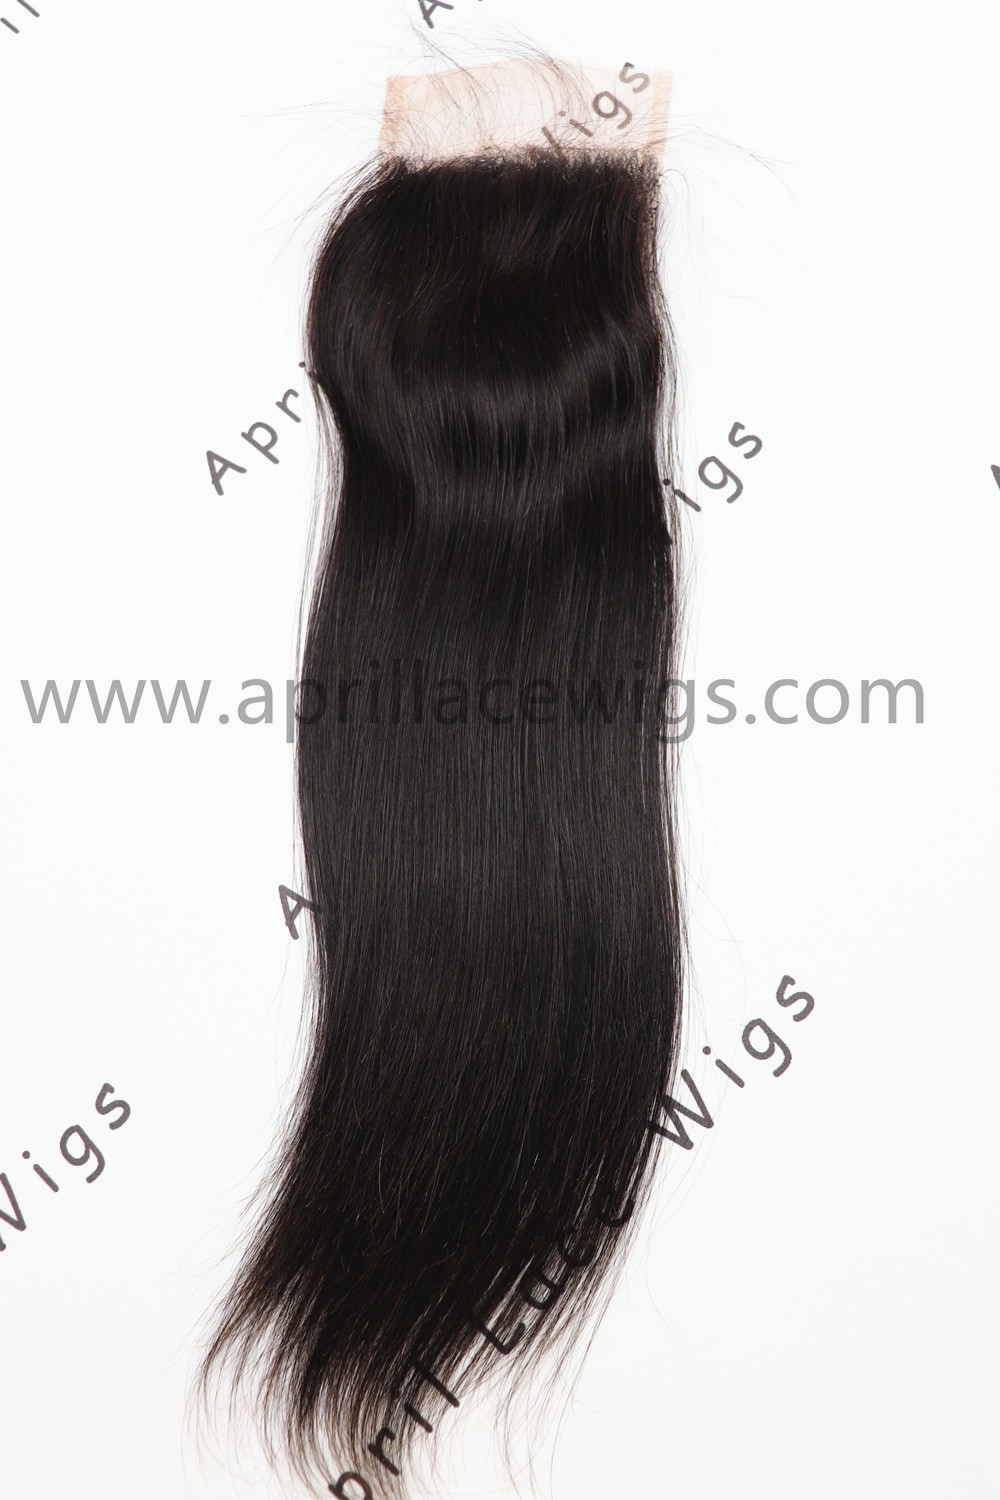 100% virgin human hair straight lace closure